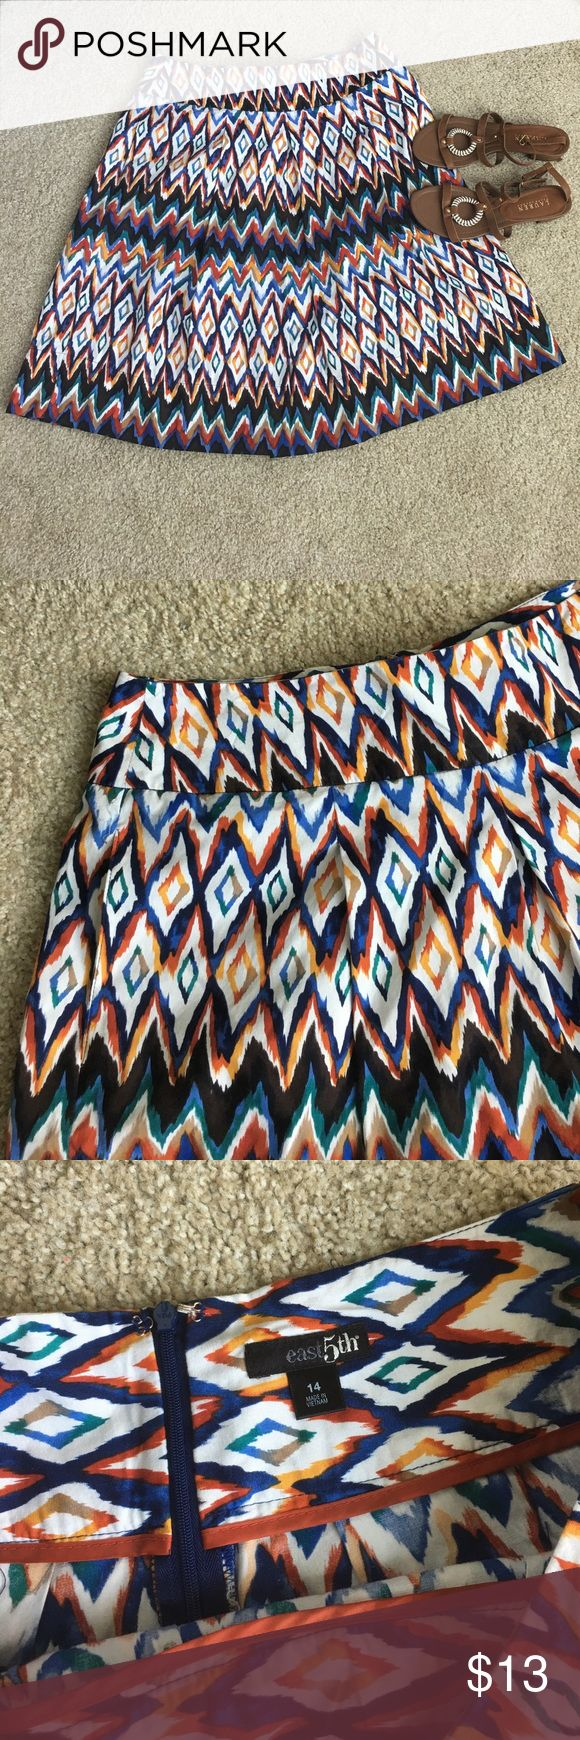 Like new Tribal print skirt Adorable skirt in like new condition. Has 2 pockets at the sides. Great for summer ! Size 14 Skirts A-Line or Full